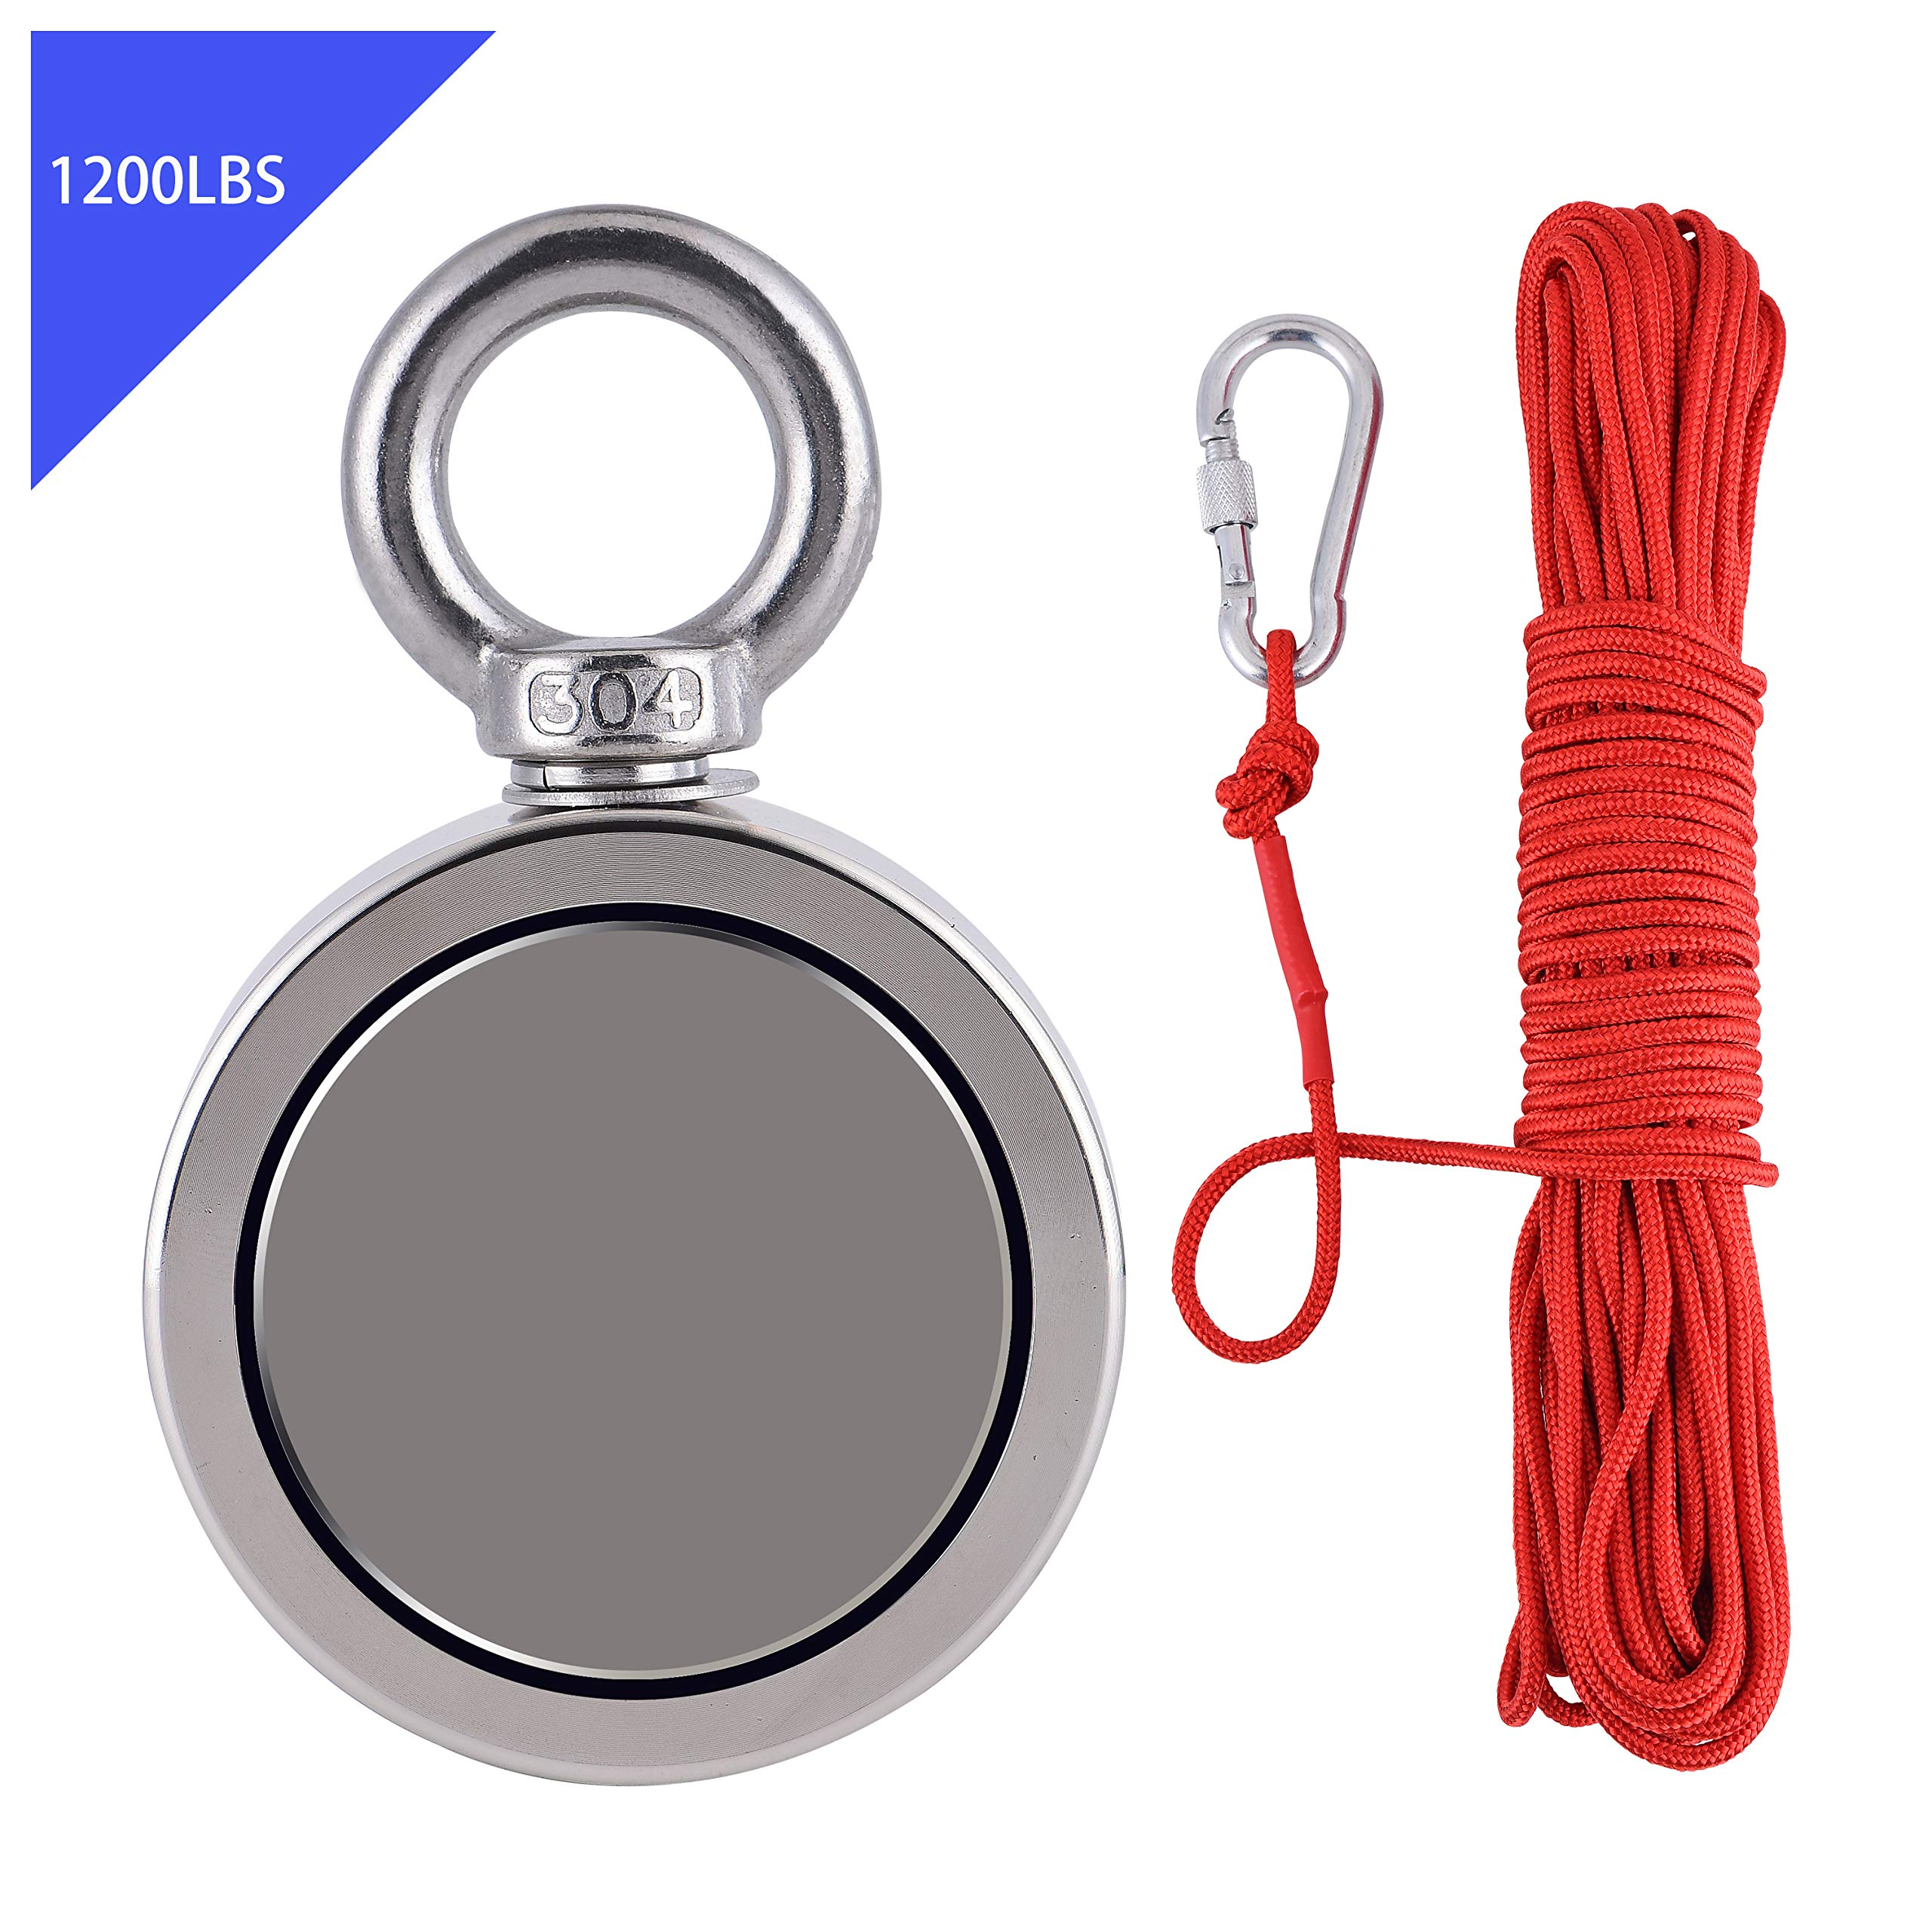 Powerful Fishing Magnets Double Sided with Rope x 66ft, MagnusMags 1200LBS(544KG) Combined Super Strong Pulling Force Neodymium Rare Earth Magnet Kit for Fishing Treasure in River - 2.95'' Diameter